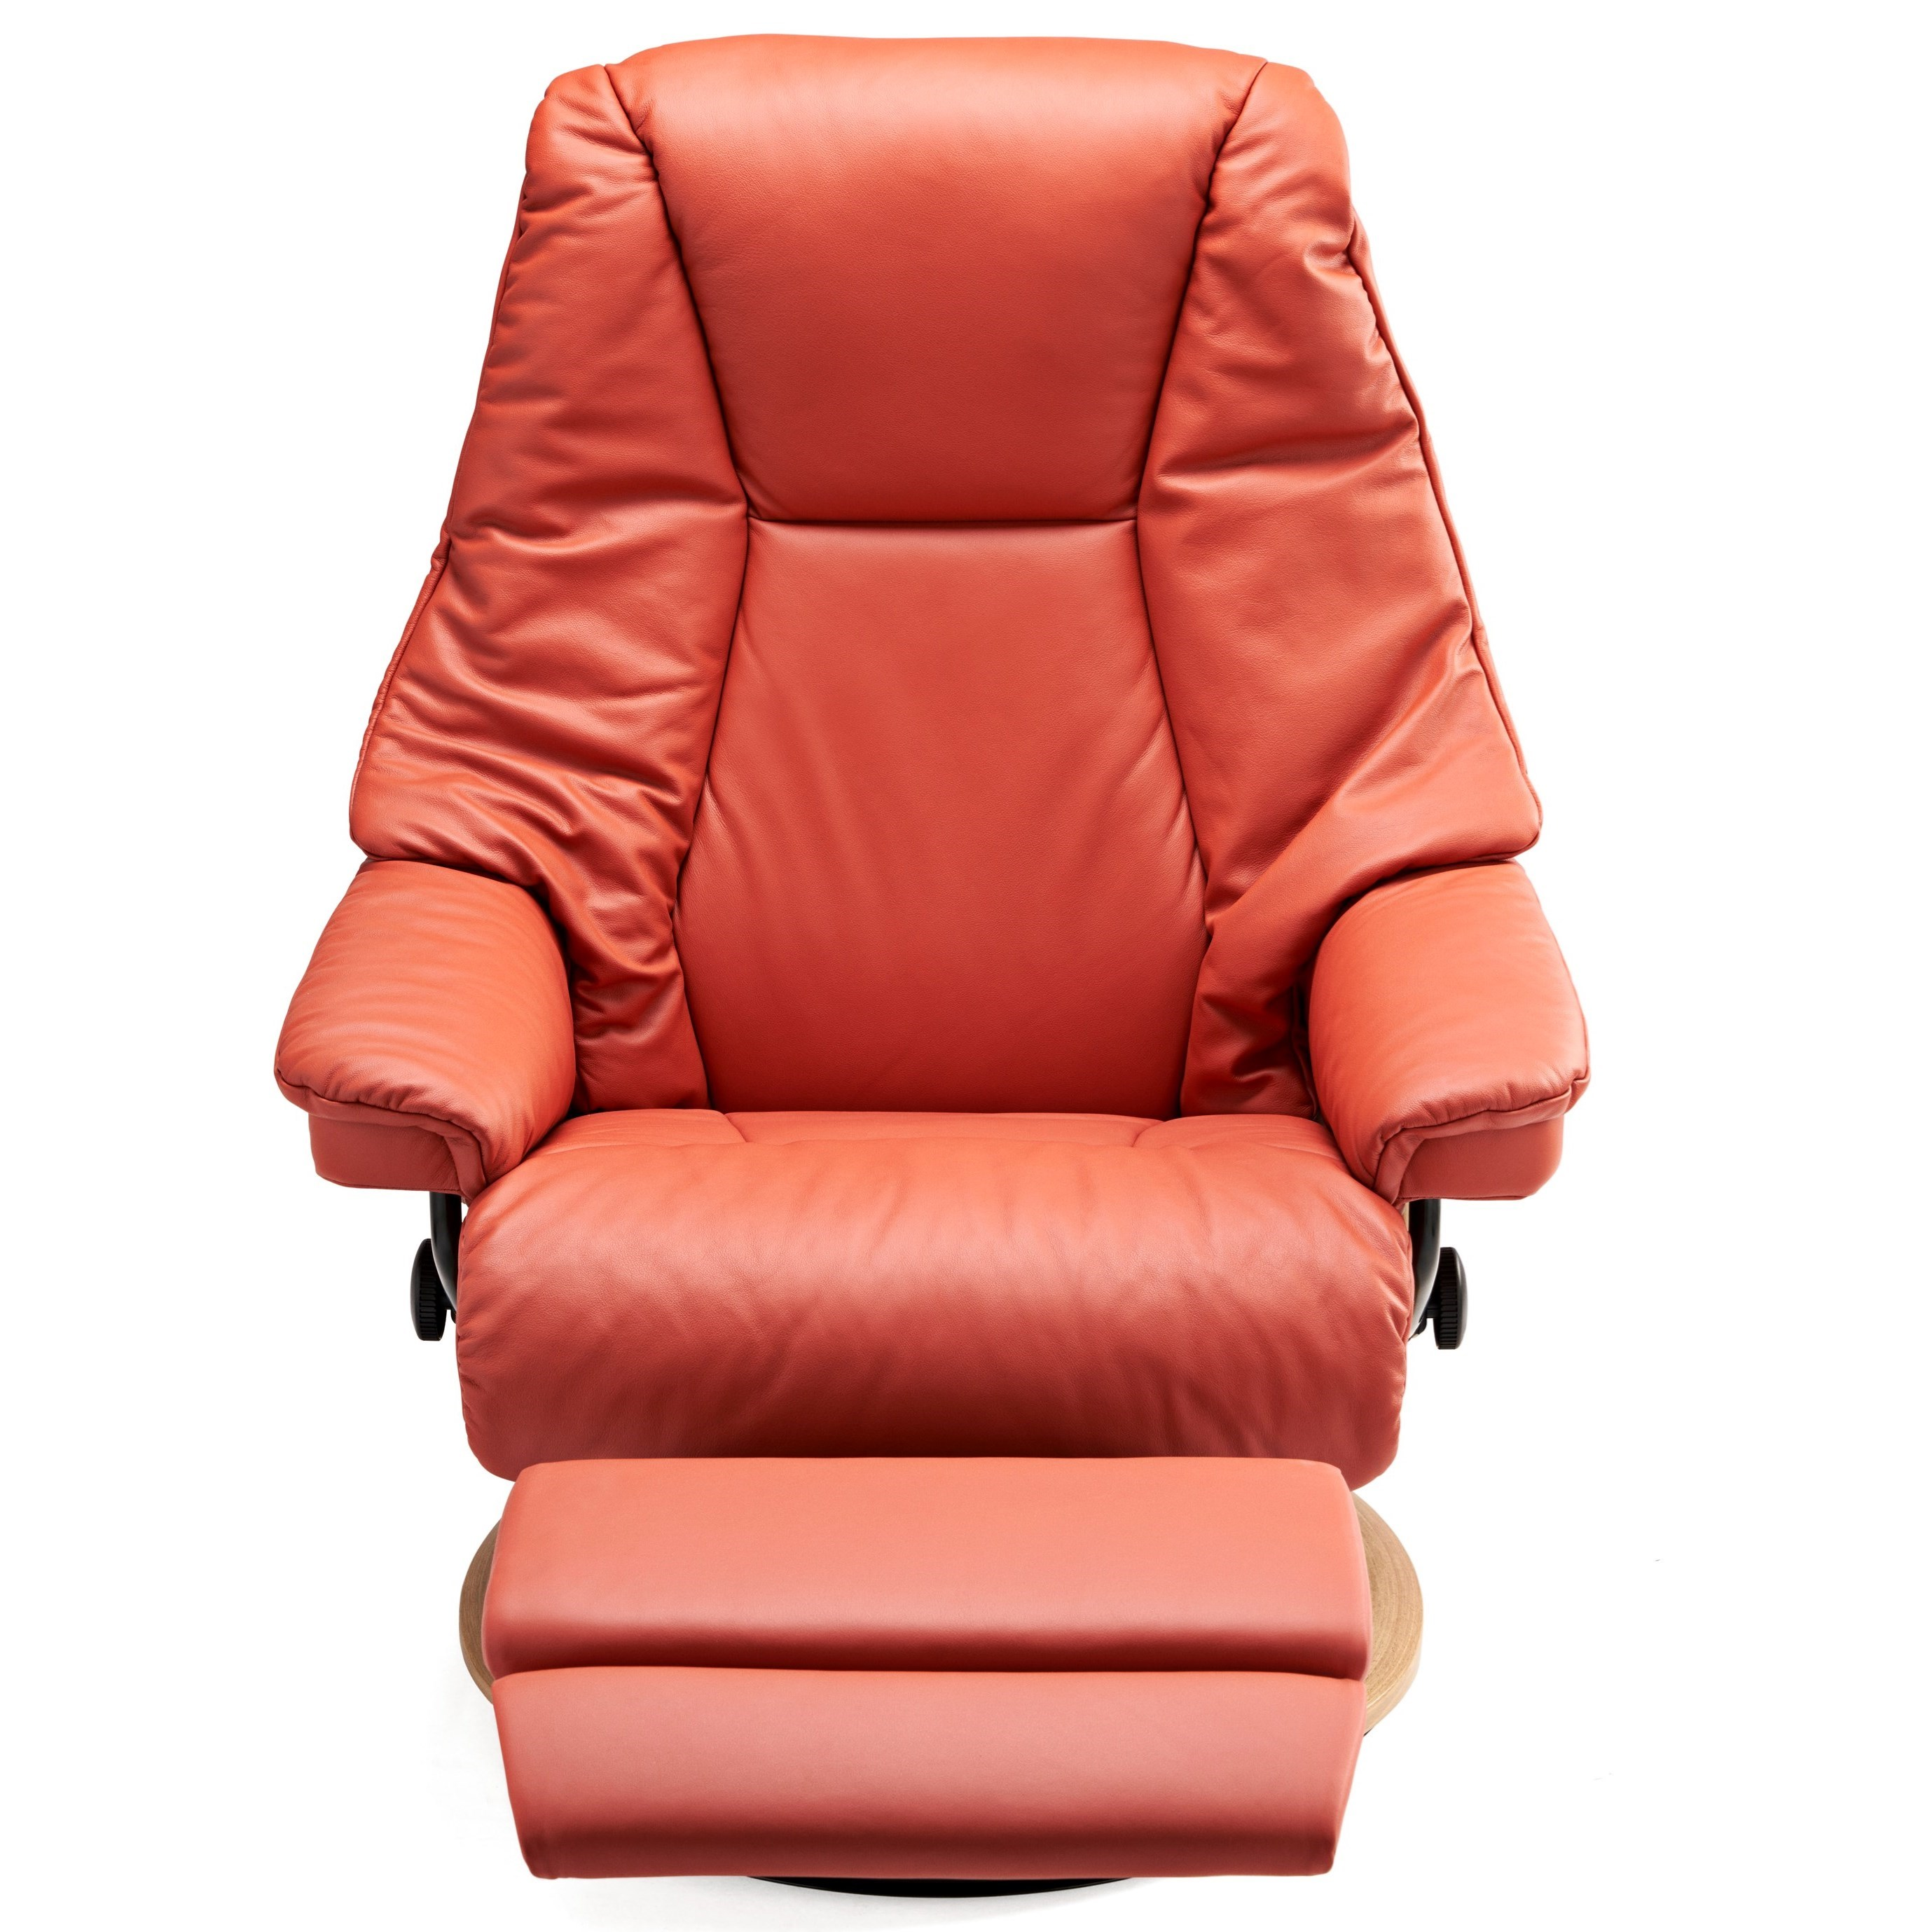 Stressless Wing Classic Legcomfort Stressless Live Large Legcomfort Chair With Classic Base